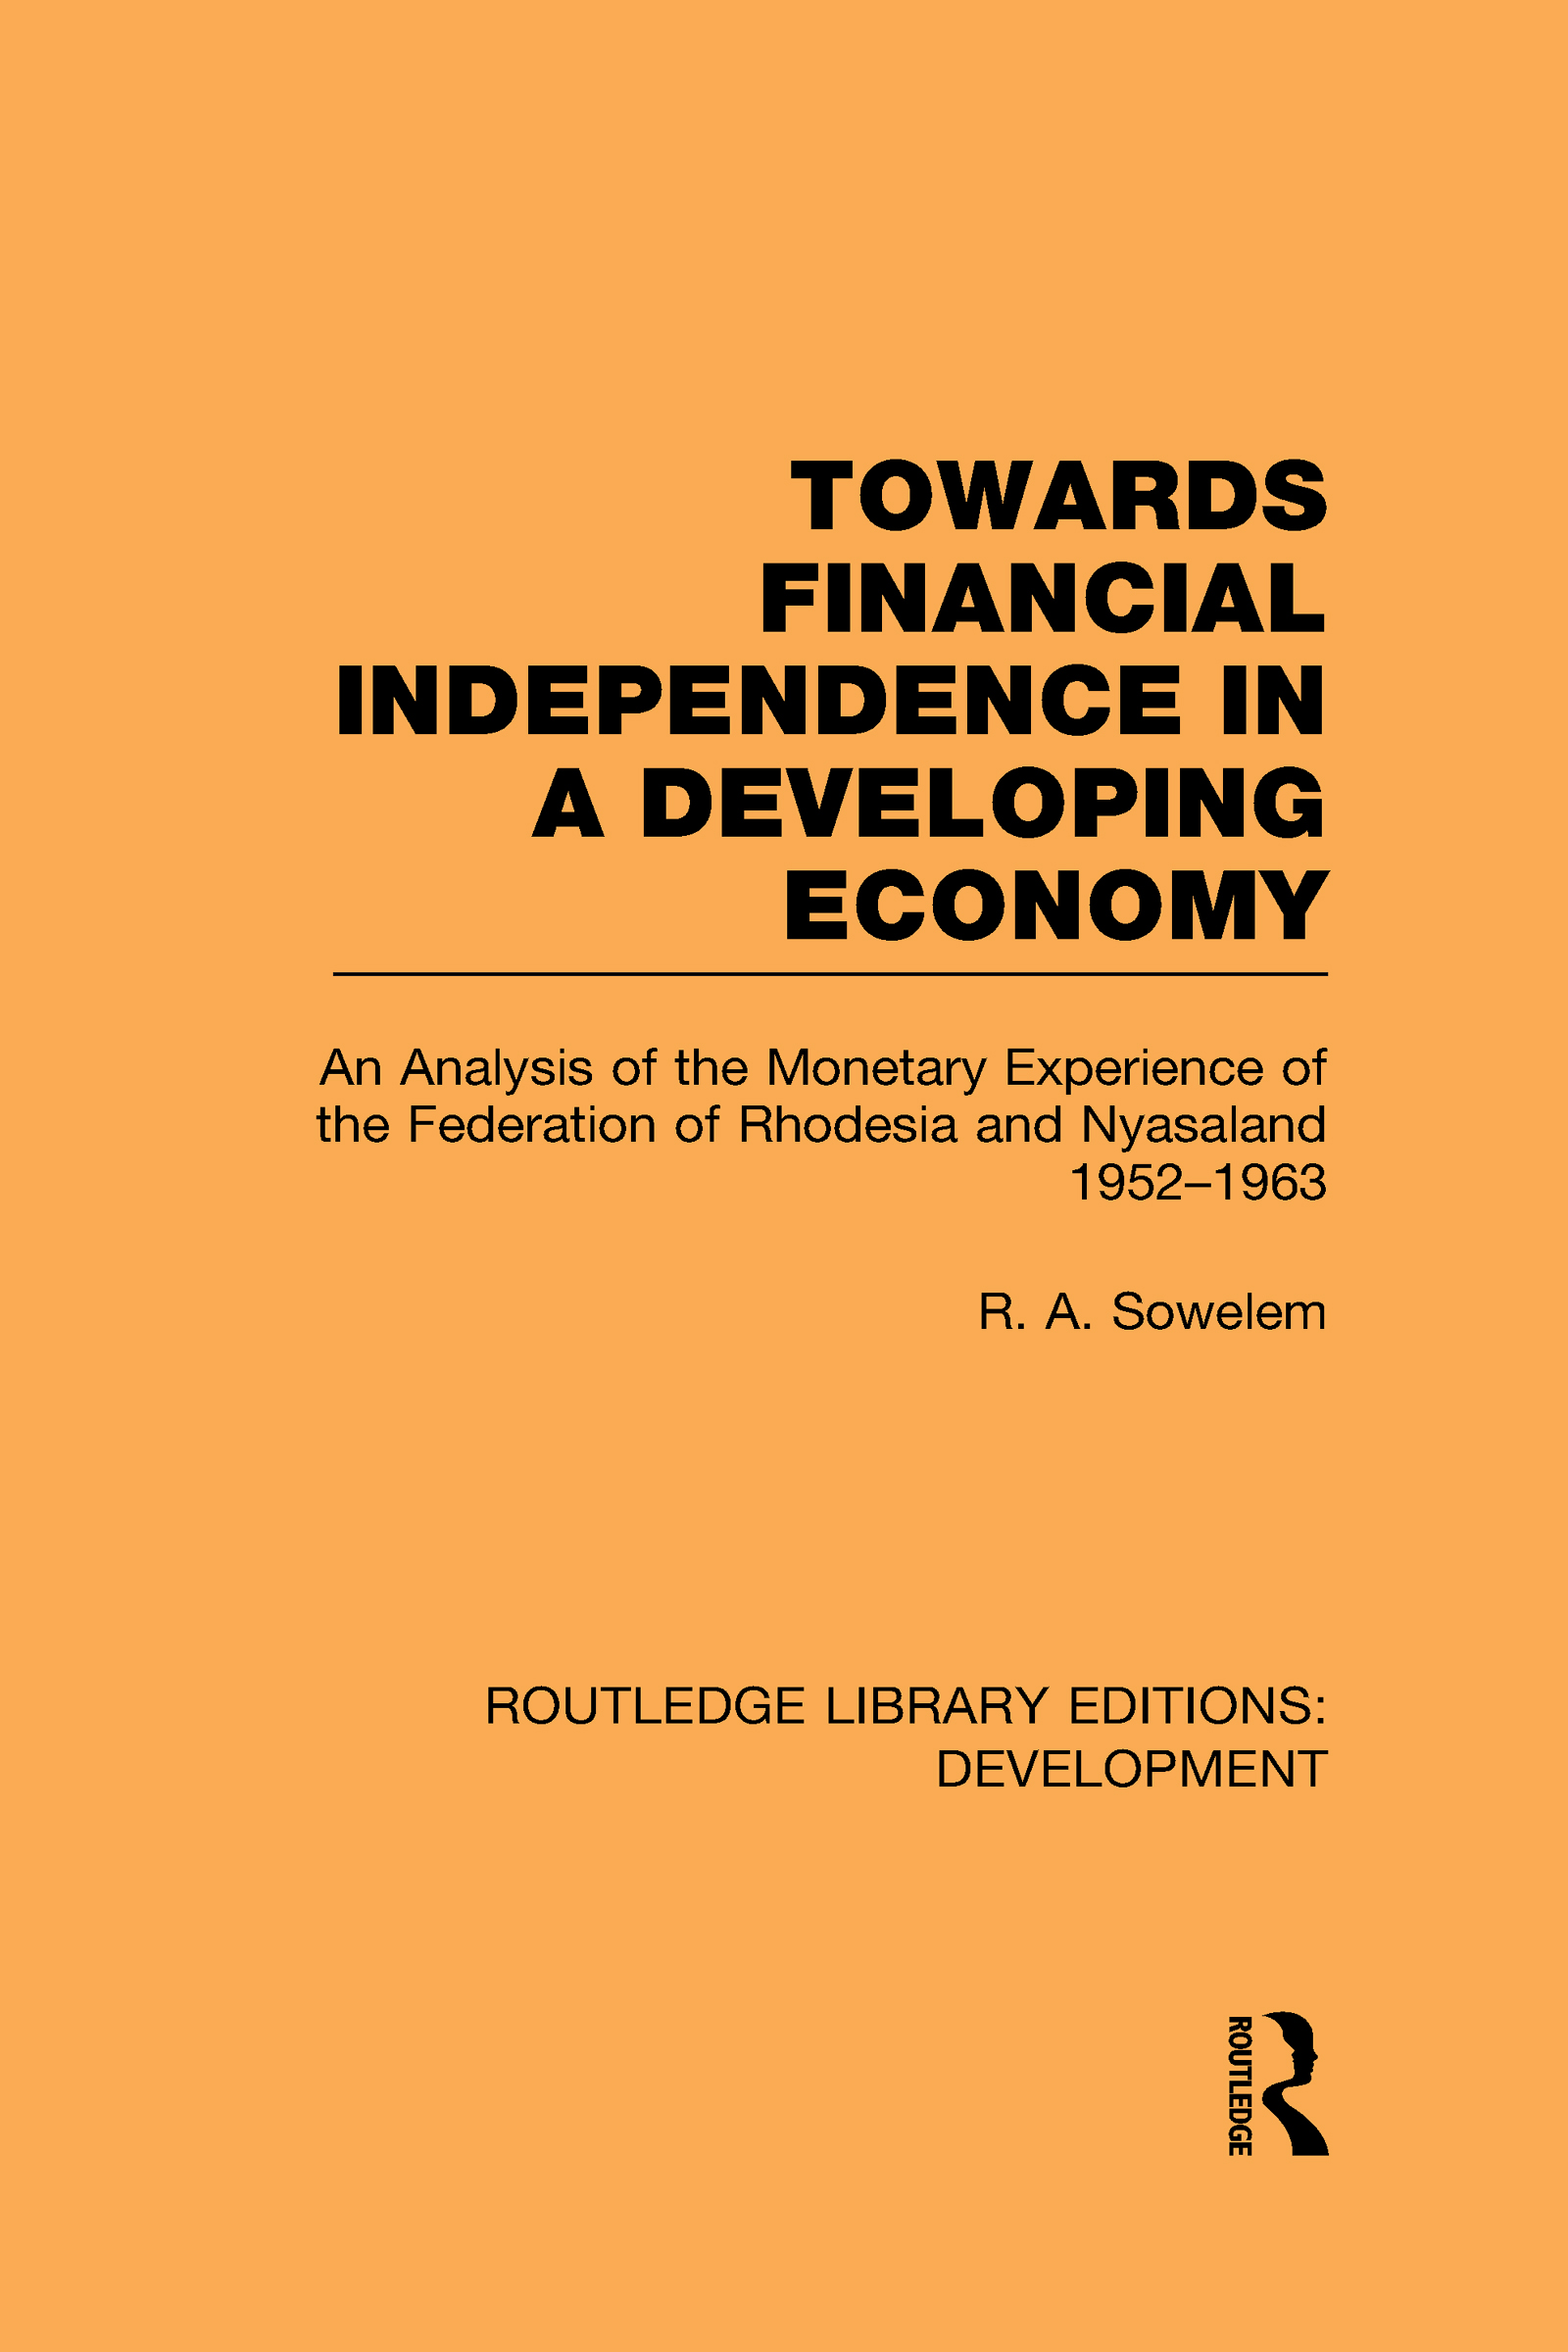 Towards Financial Independence in a Developing Economy